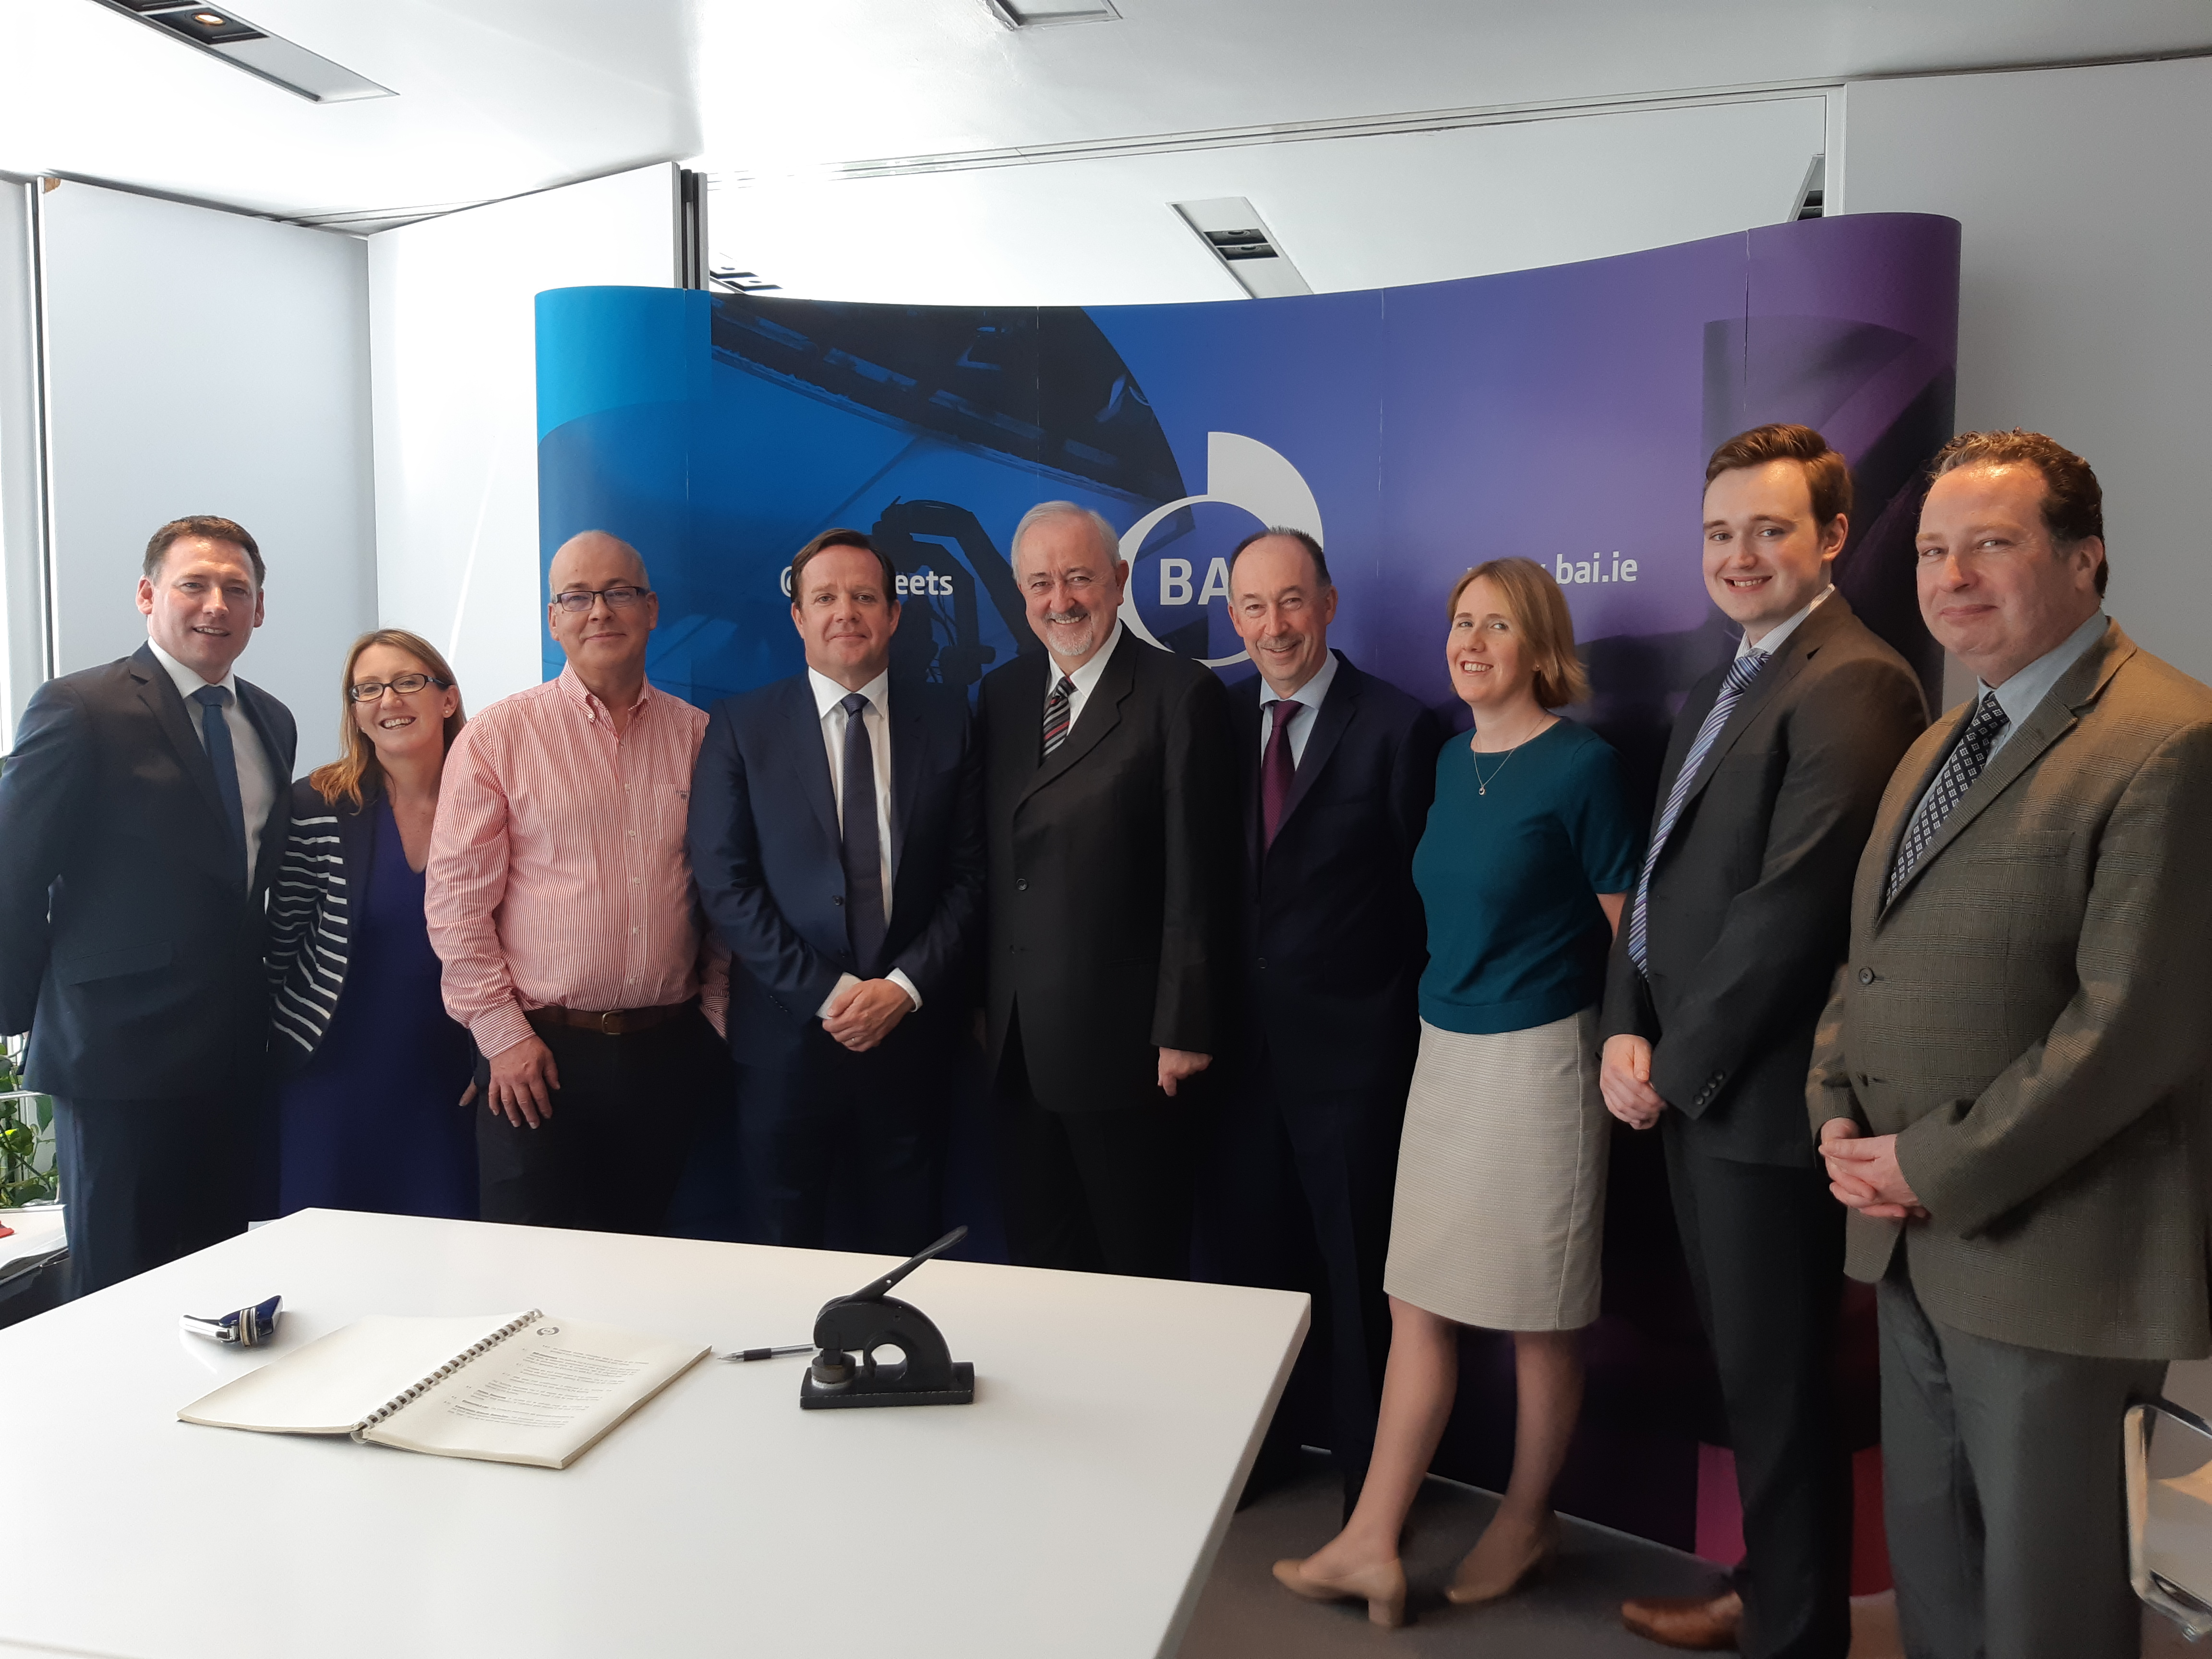 BAI signs Contracts with Virgin Media Television Limited